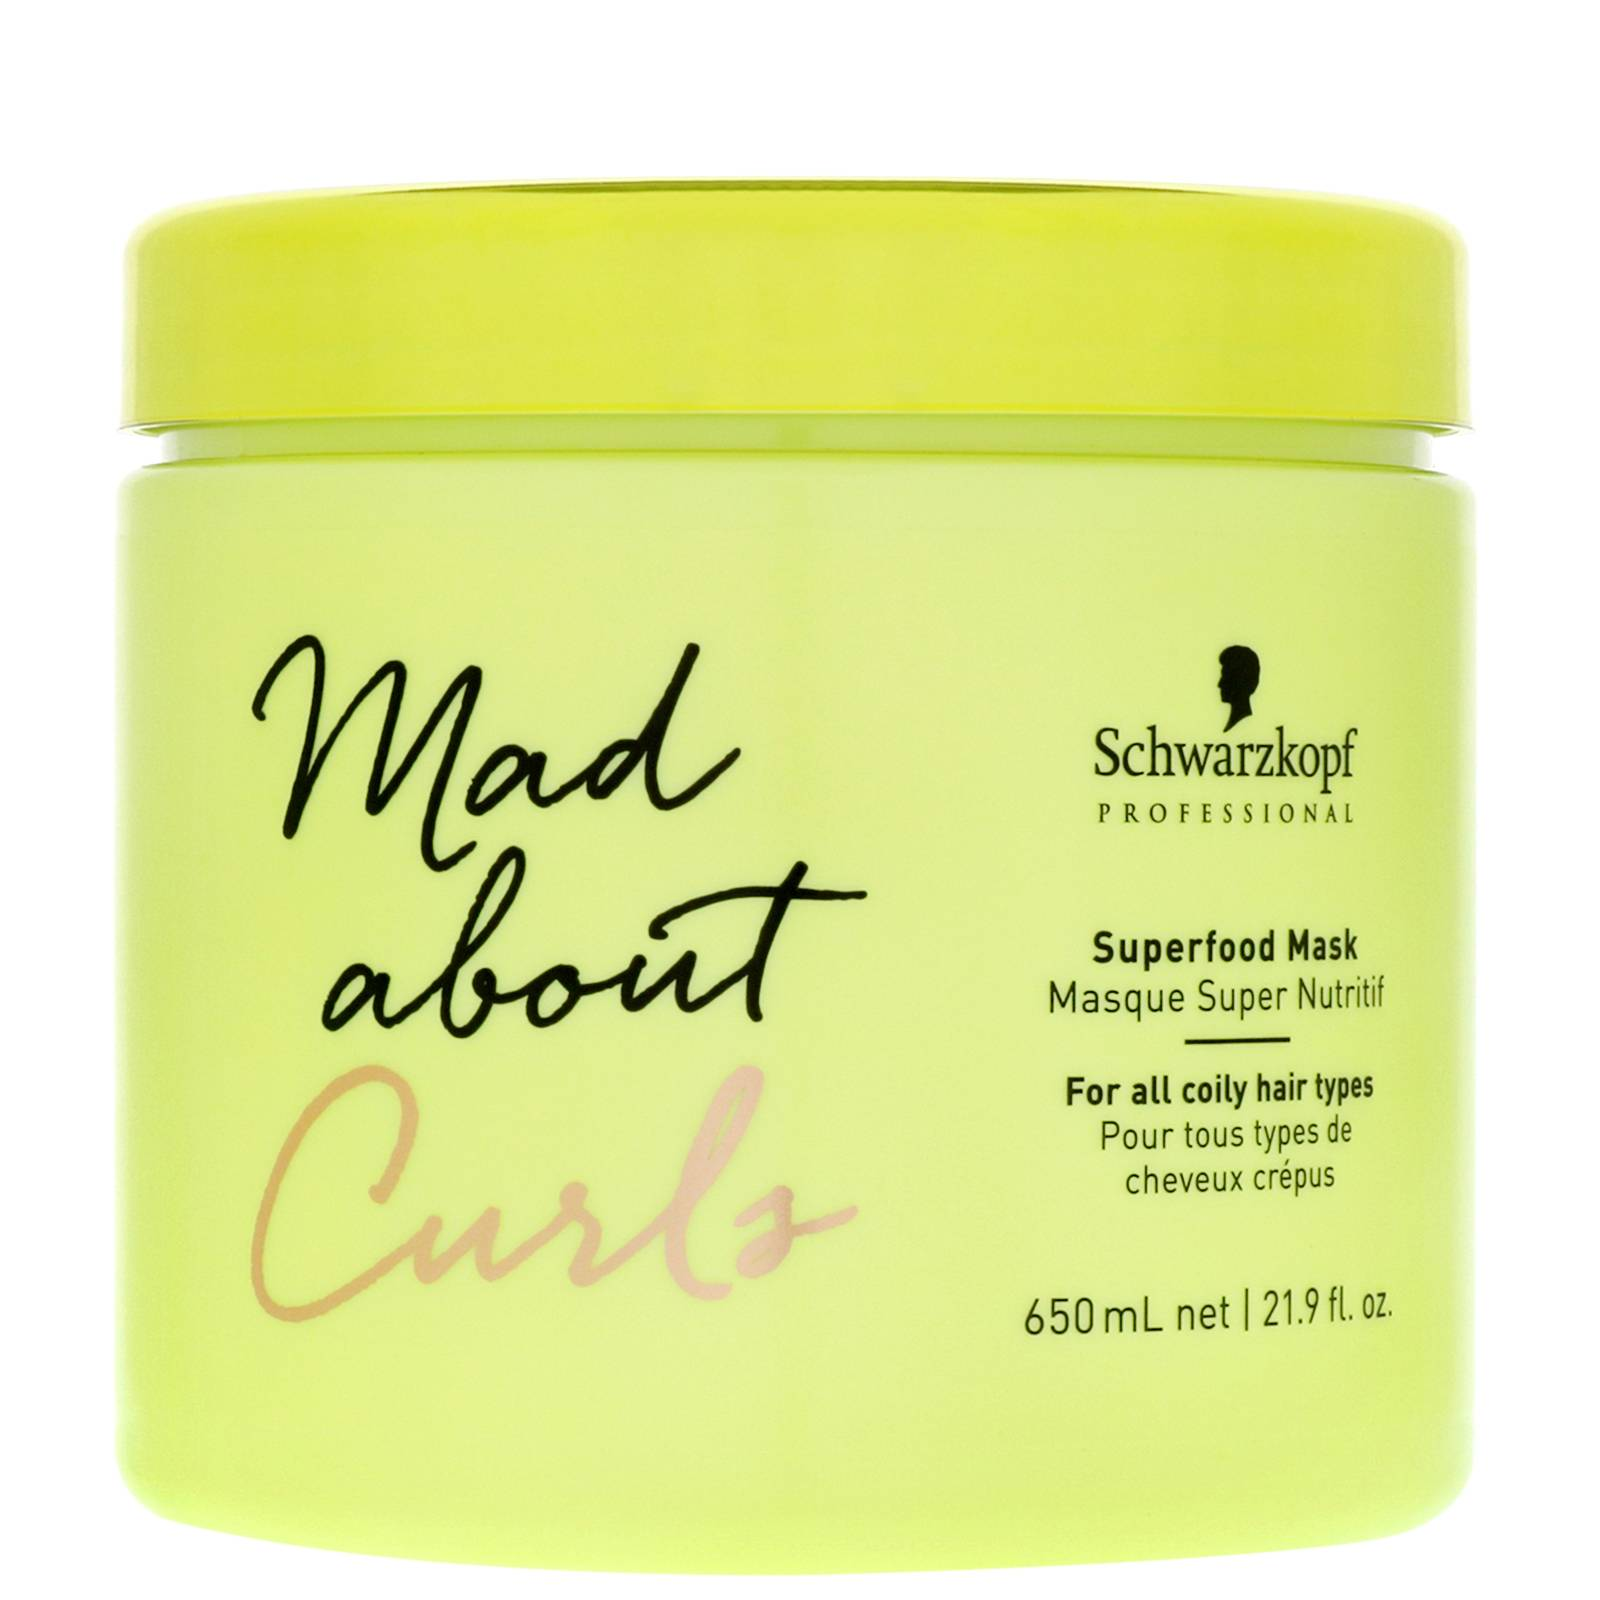 Schwarzkopf - Mad About Curls Superfood Mask 650ml for Women